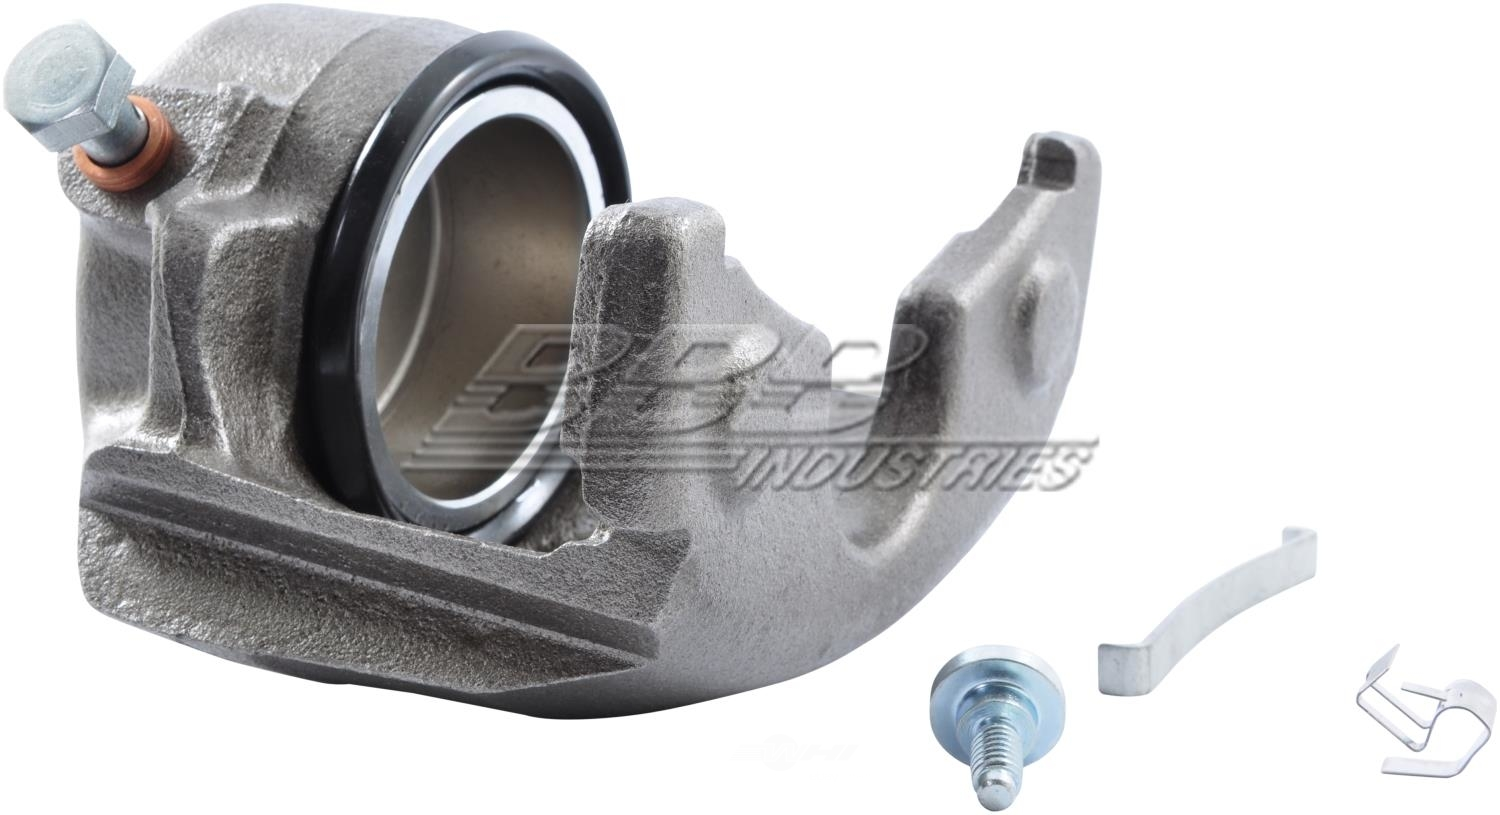 BBB INDUSTRIES - Reman Caliper w/ Installation Hardware - BBA 97-17002A